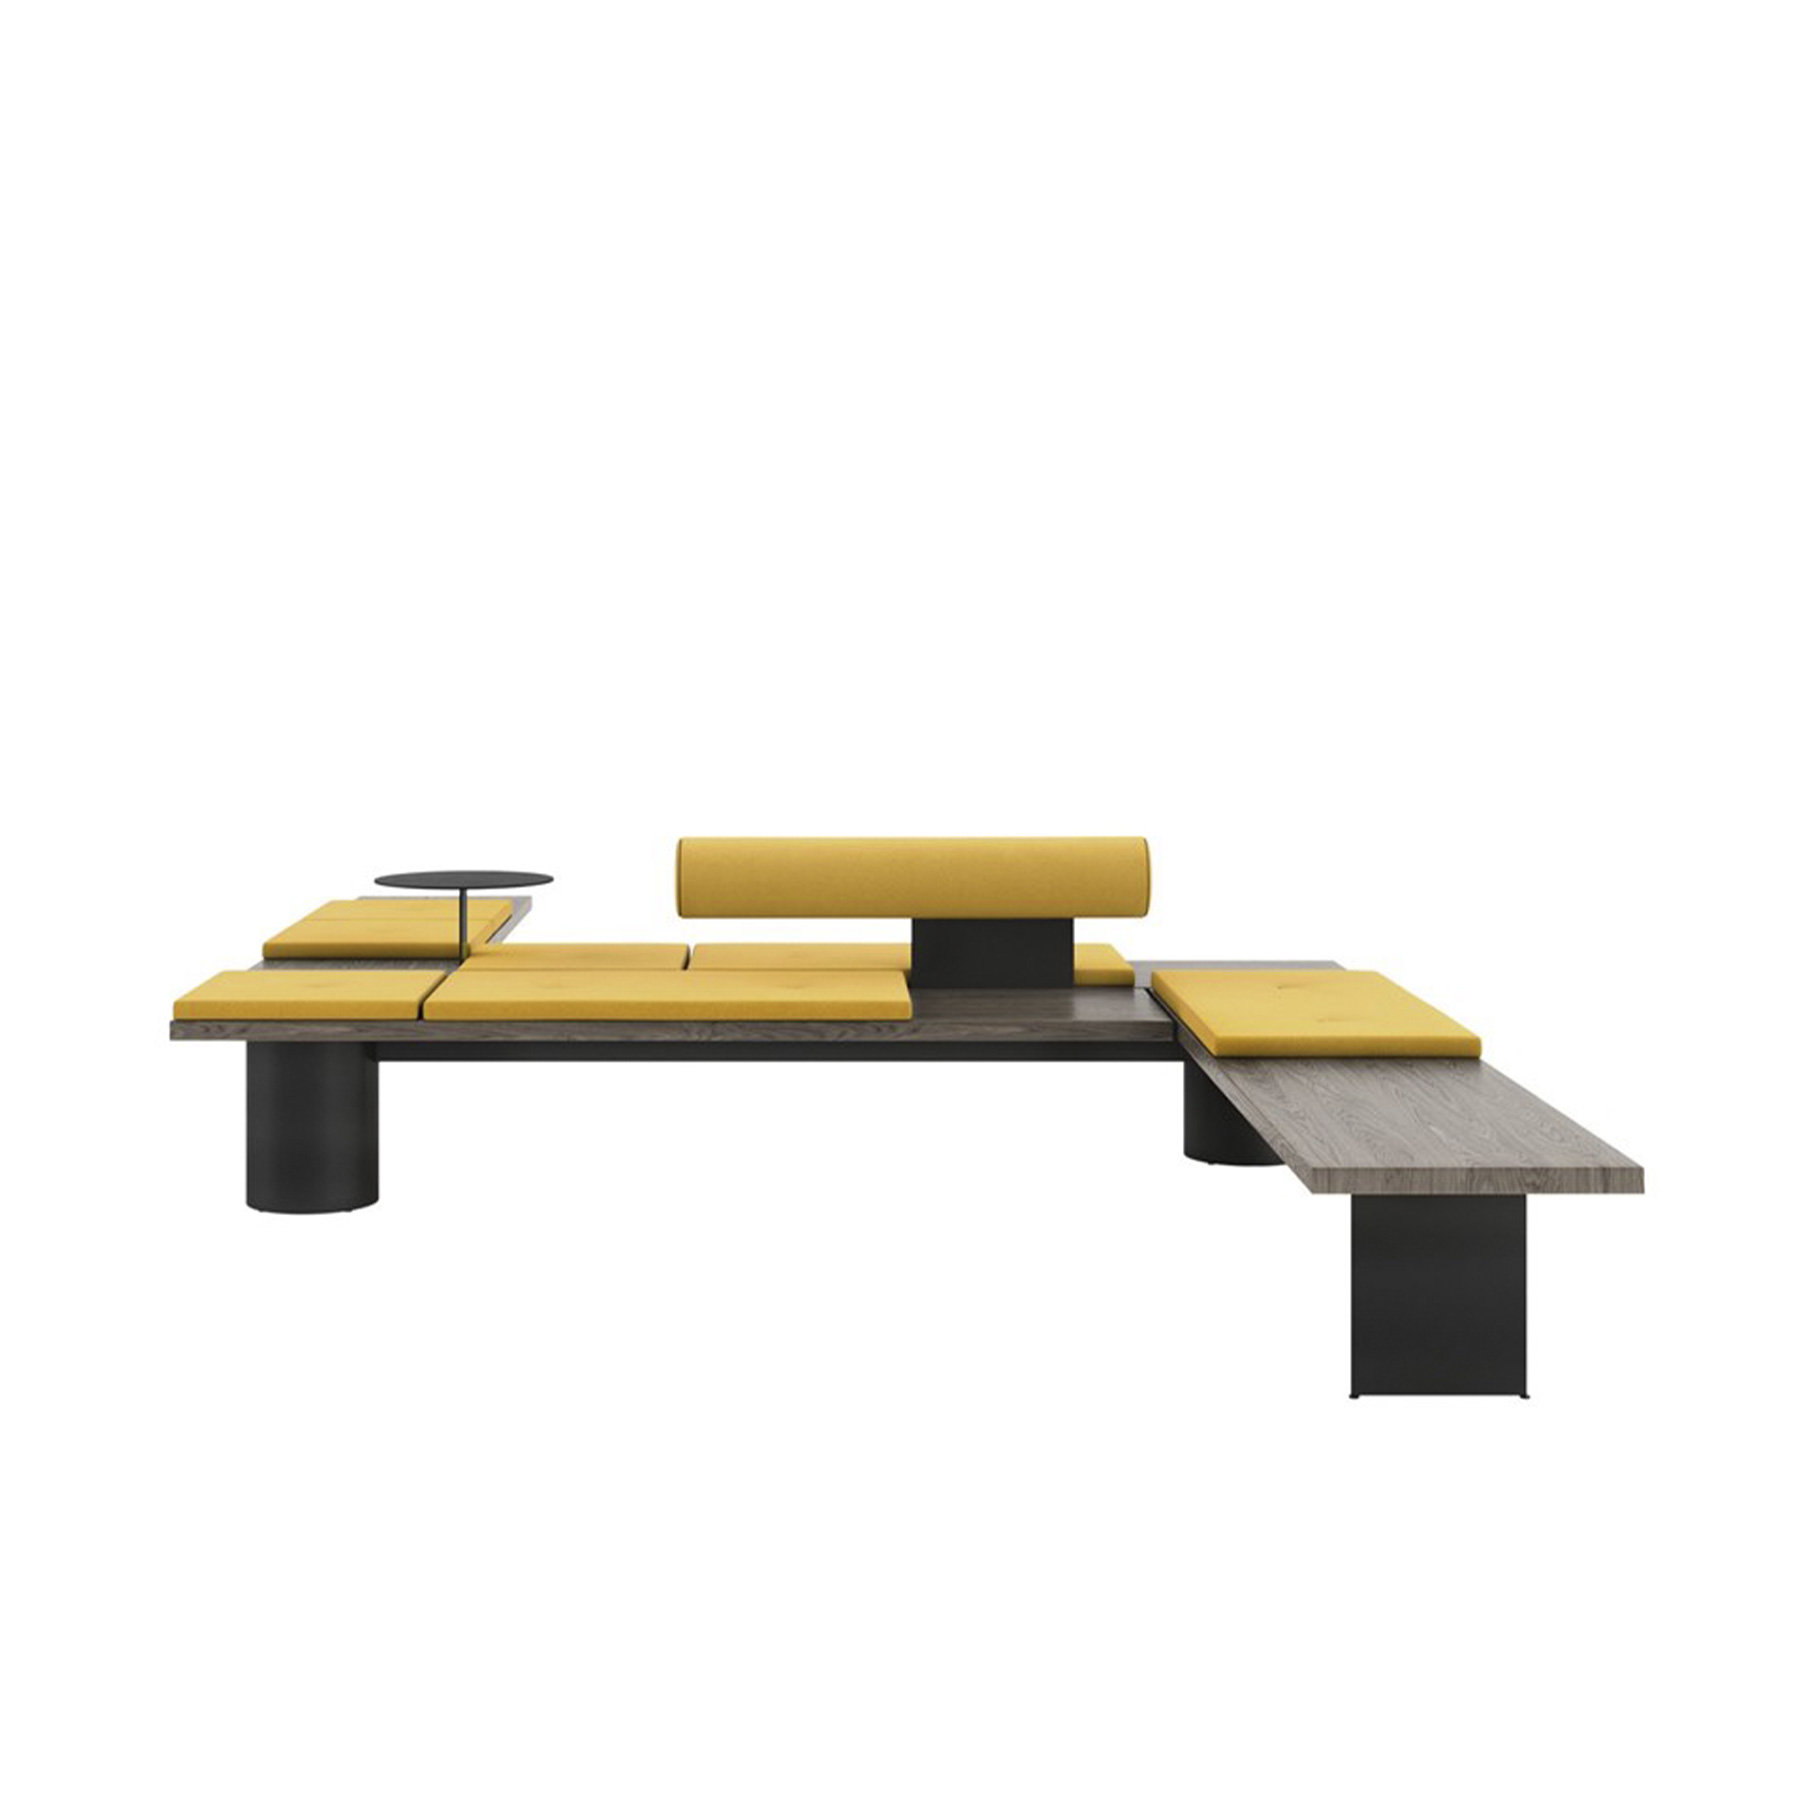 Galleria Modular Bench - Galleria is a complete design with the versatility to create a vast range of different solutions: a linear bench, a double corner seat, an island perfect for waiting, relaxation and conviviality.‎ And all this is developed around a simple steel bar, onto which to freely attach the various simple, geometrically-shaped elements in wood, leather, fabric, marble and metal painted in a range of colours.‎ Each composition can be used on its own or in groups, offering endless possibilities for use that will blend beautifully with any space or style.‎